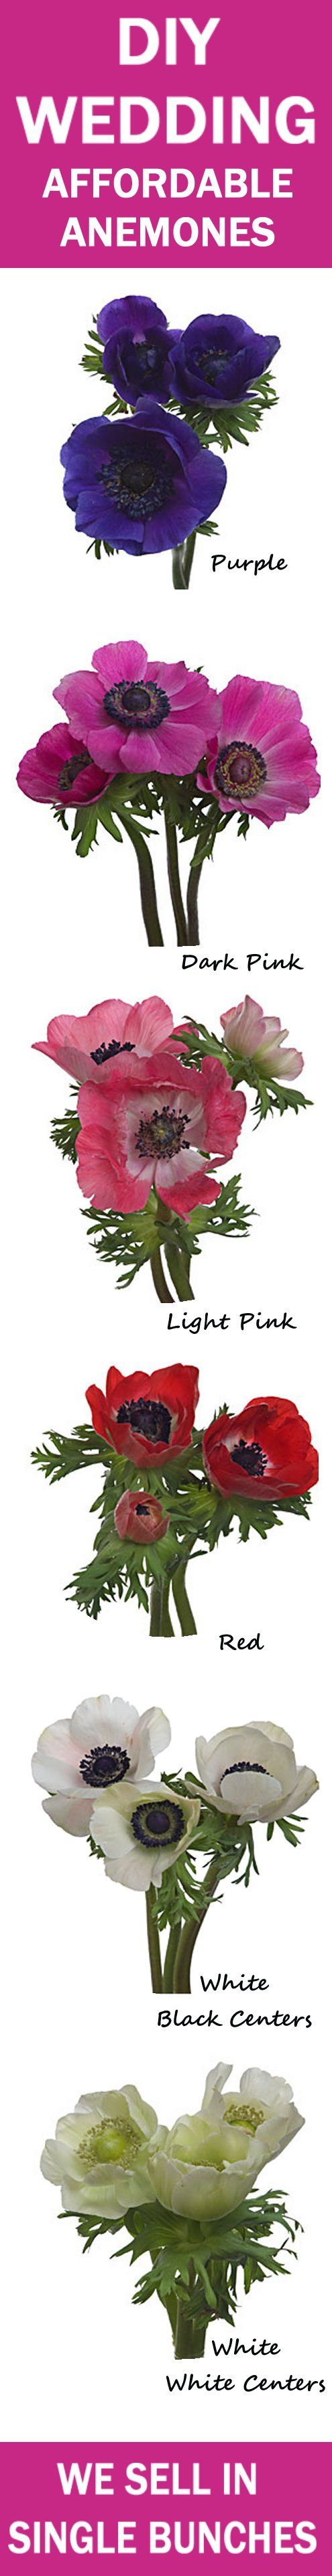 Anemone Bridal Bouquet - Easy Wedding Flower Tutorials  Learn how to make bridal bouquets, wedding corsages, groom boutonnieres, church decorations, pew ends and reception decorations.  Buy fresh flowers and discount florist supplies.